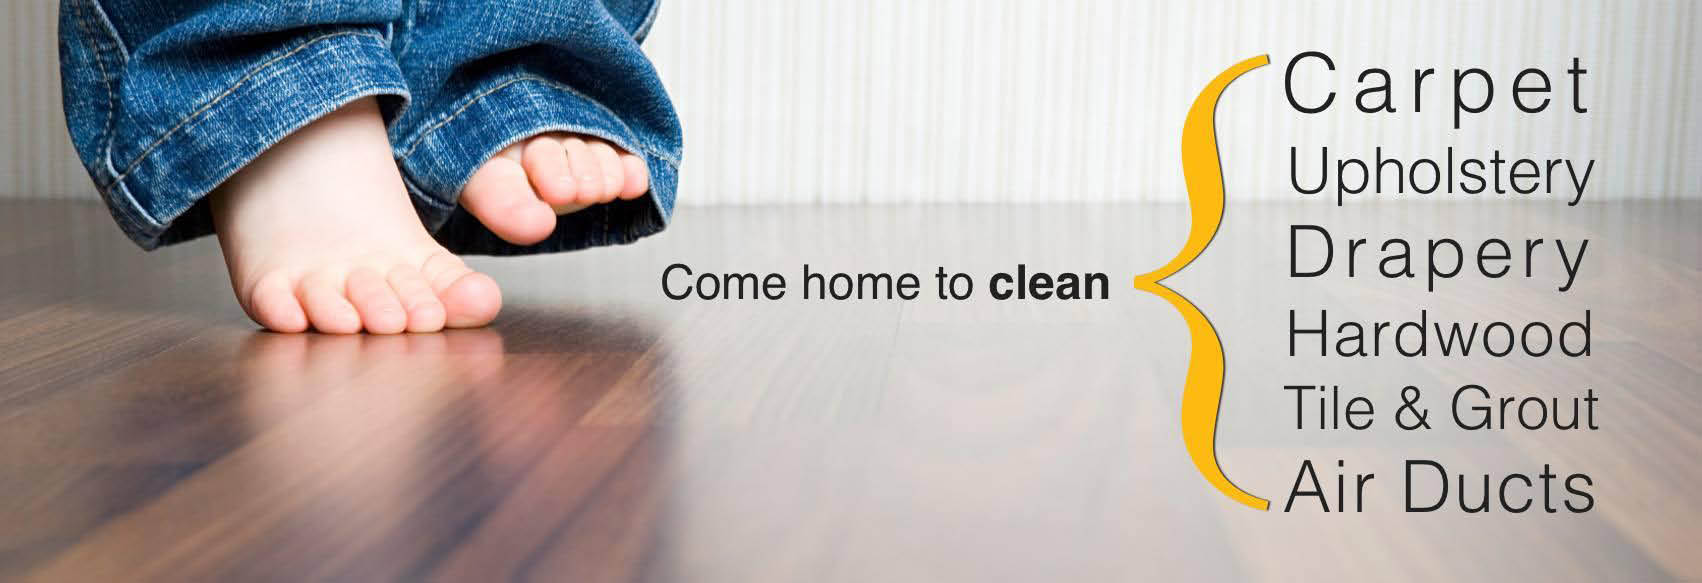 coit cleaning and restoration  carpet cleaning coupons south florida